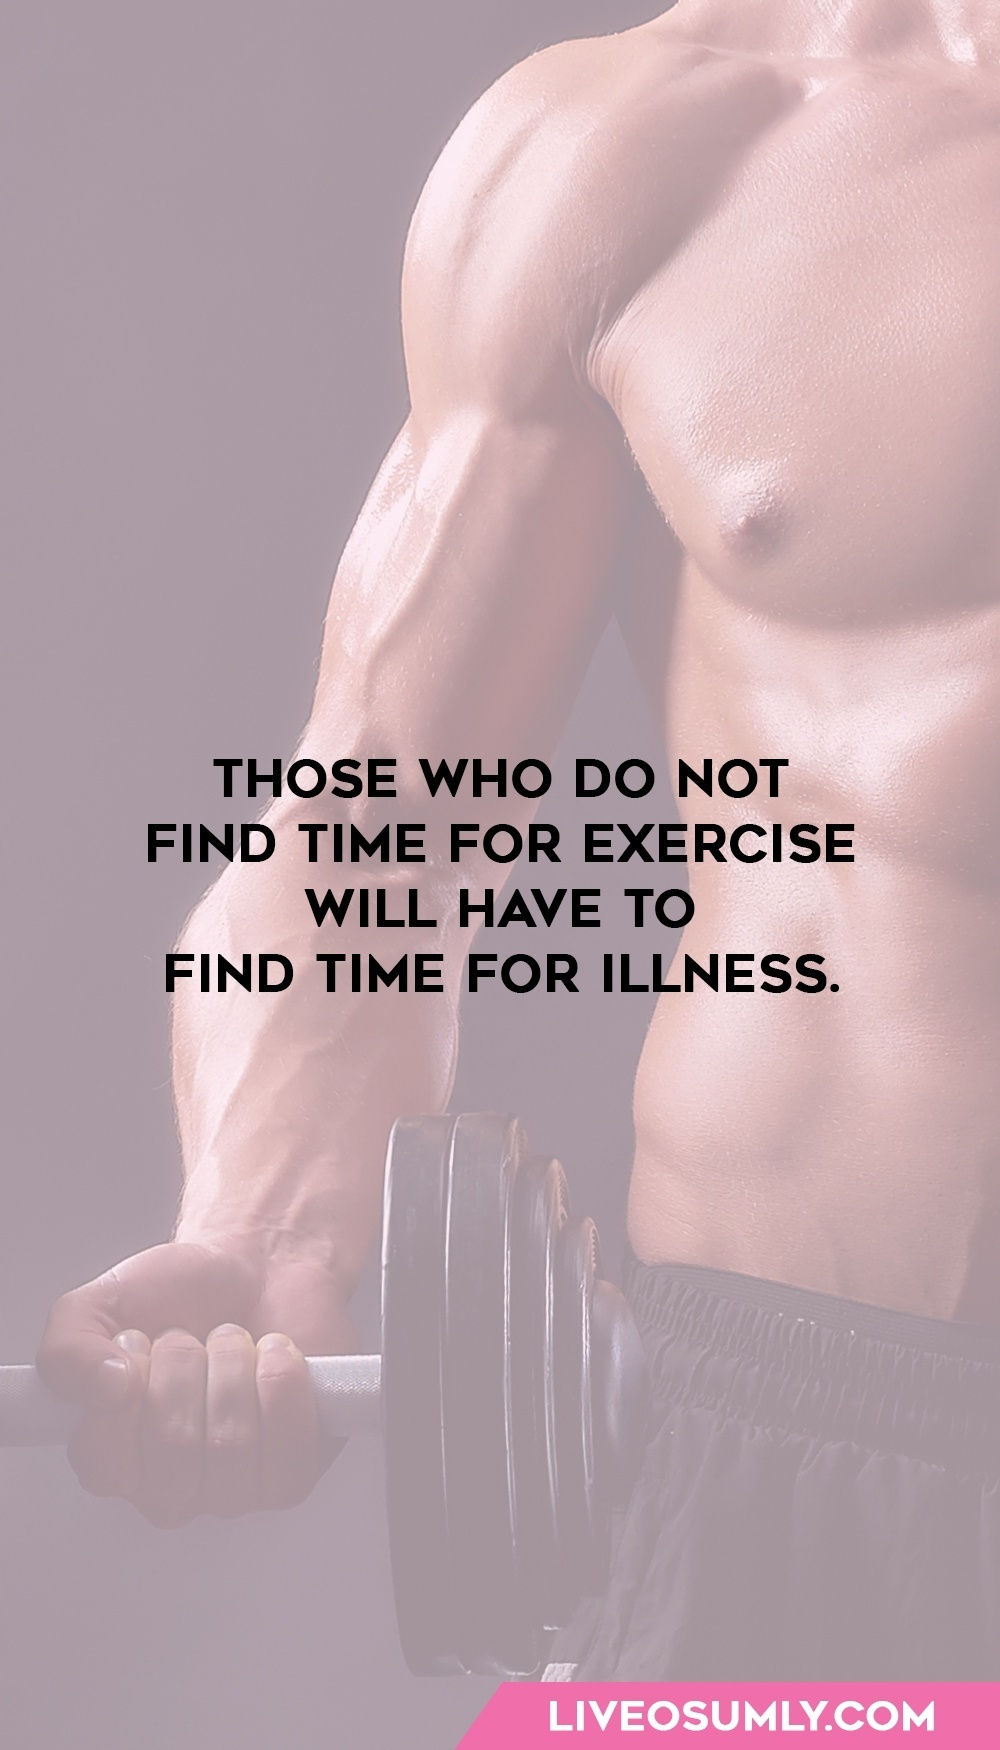 29. True Quotes about Fitness